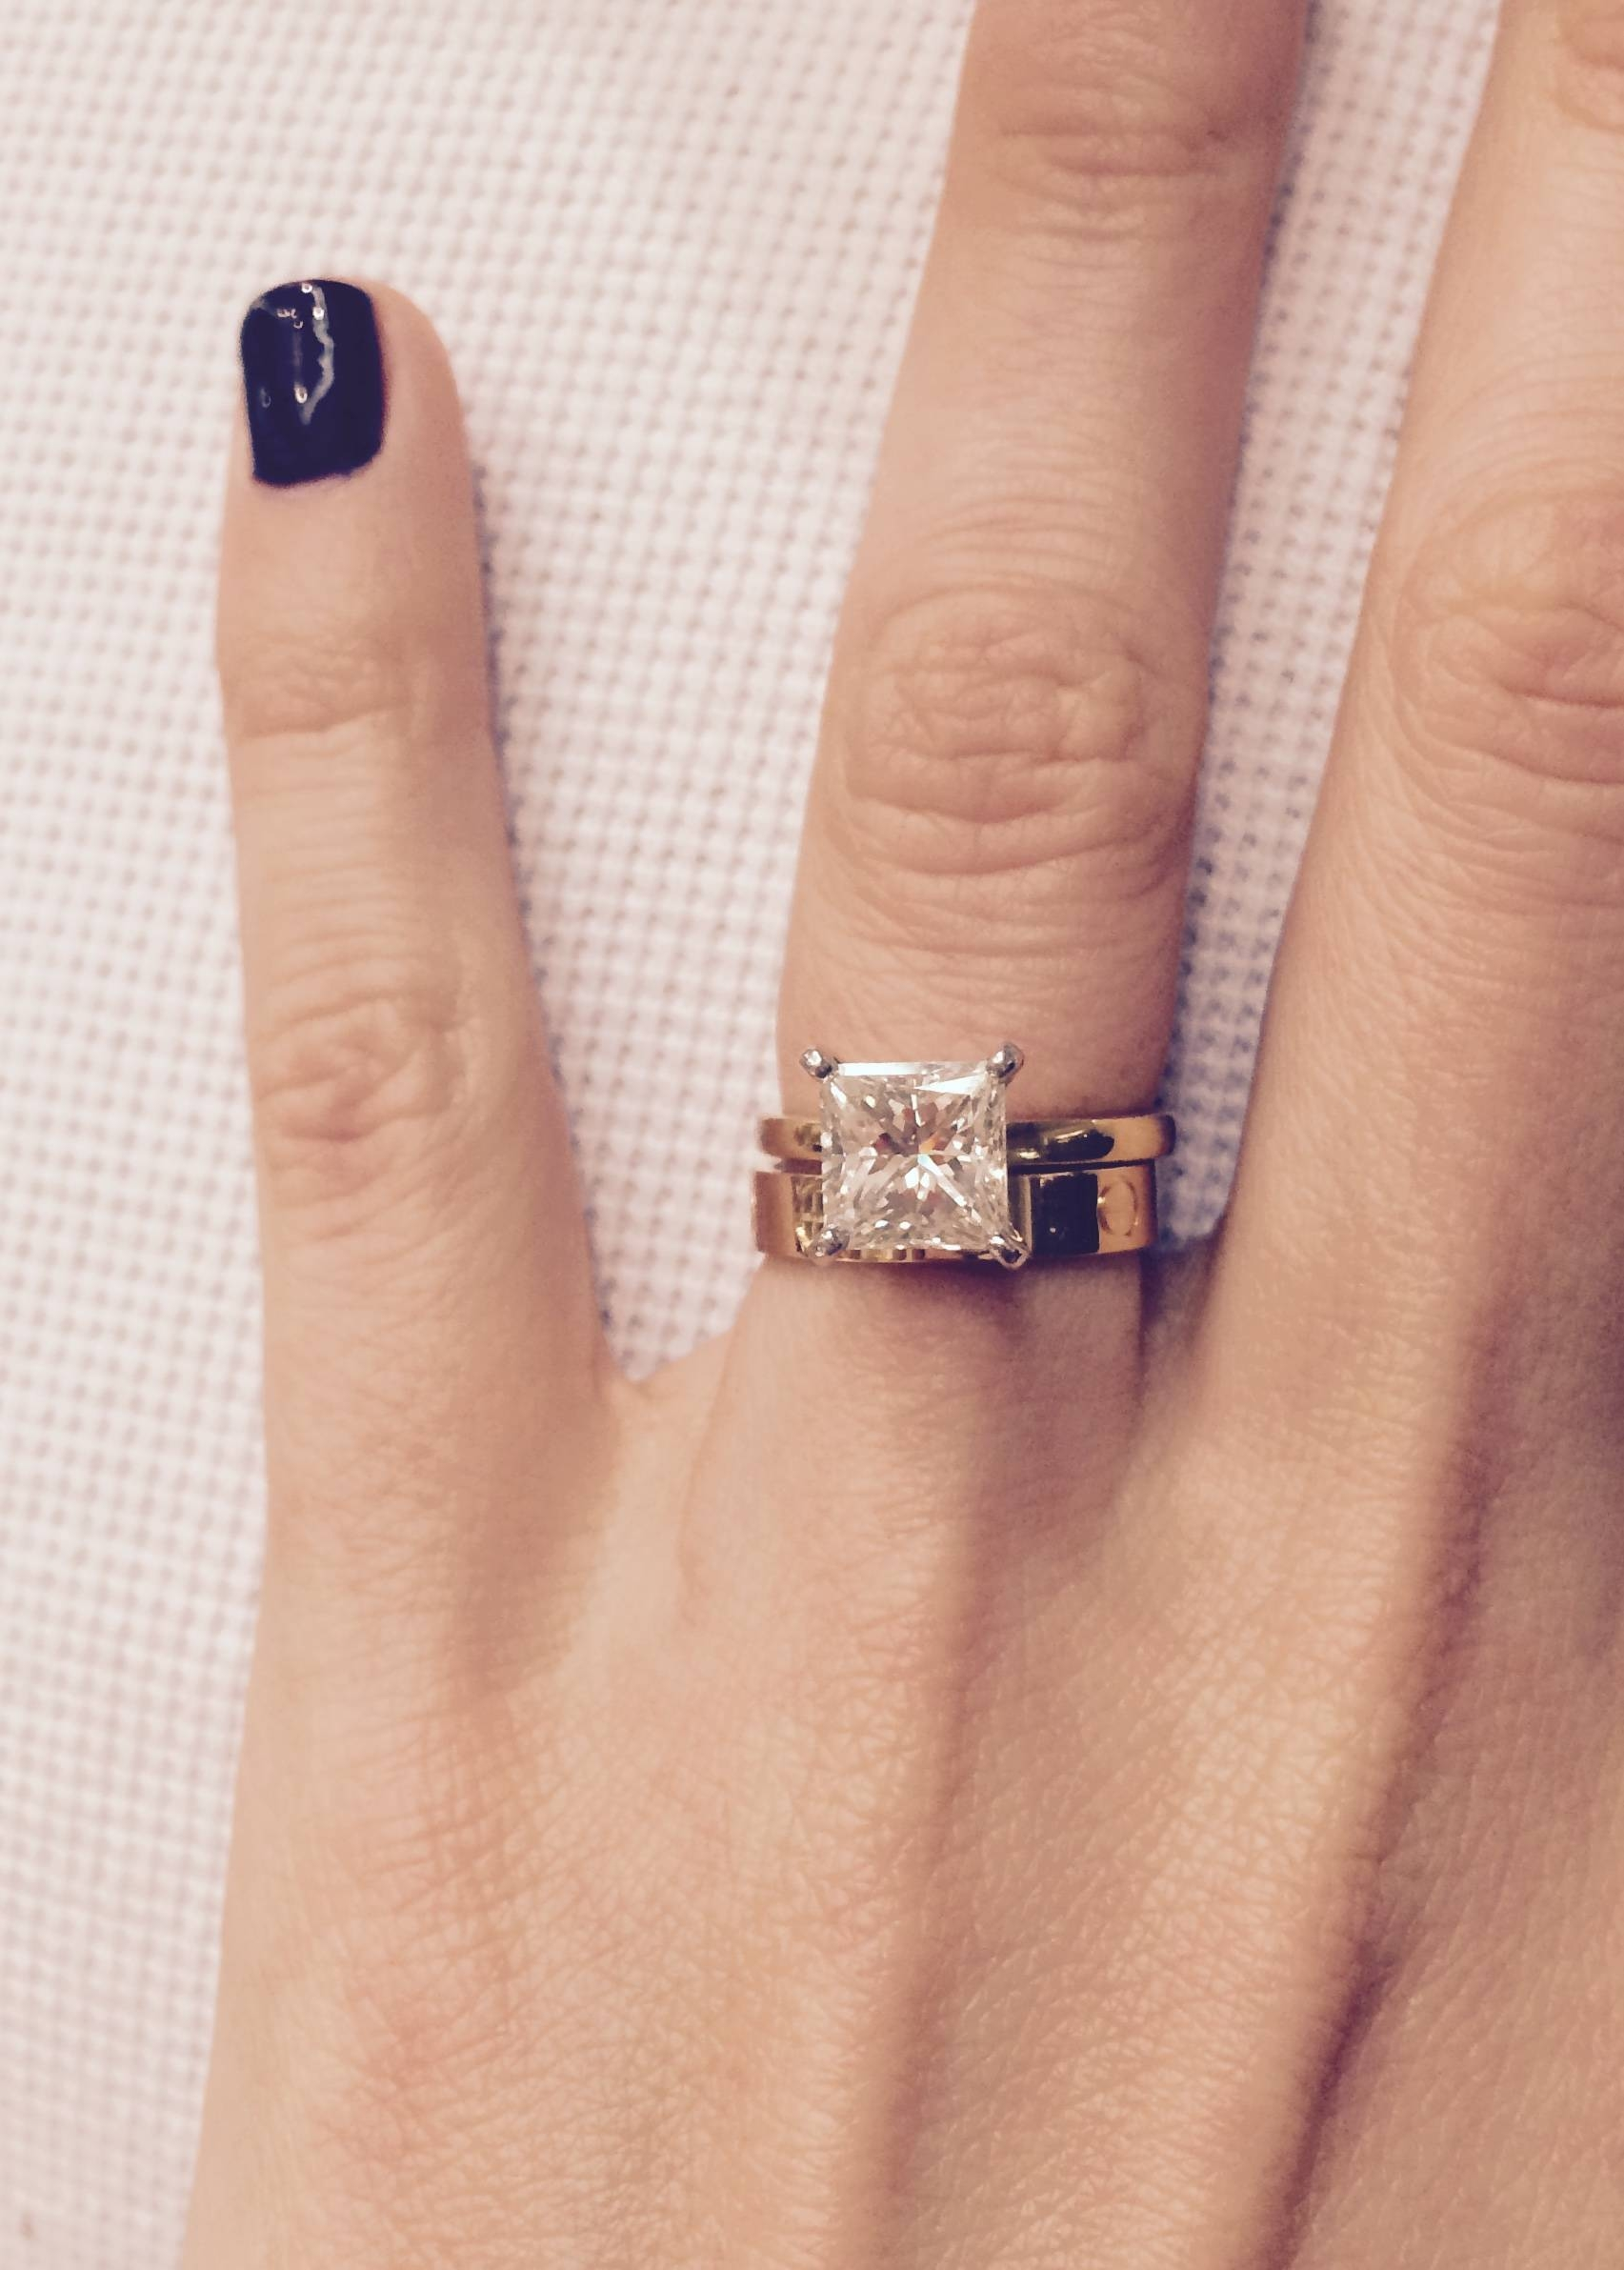 Pictures Of Your Princess Cut Diamond Engagement Rings Throughout  (View 10 of 15)